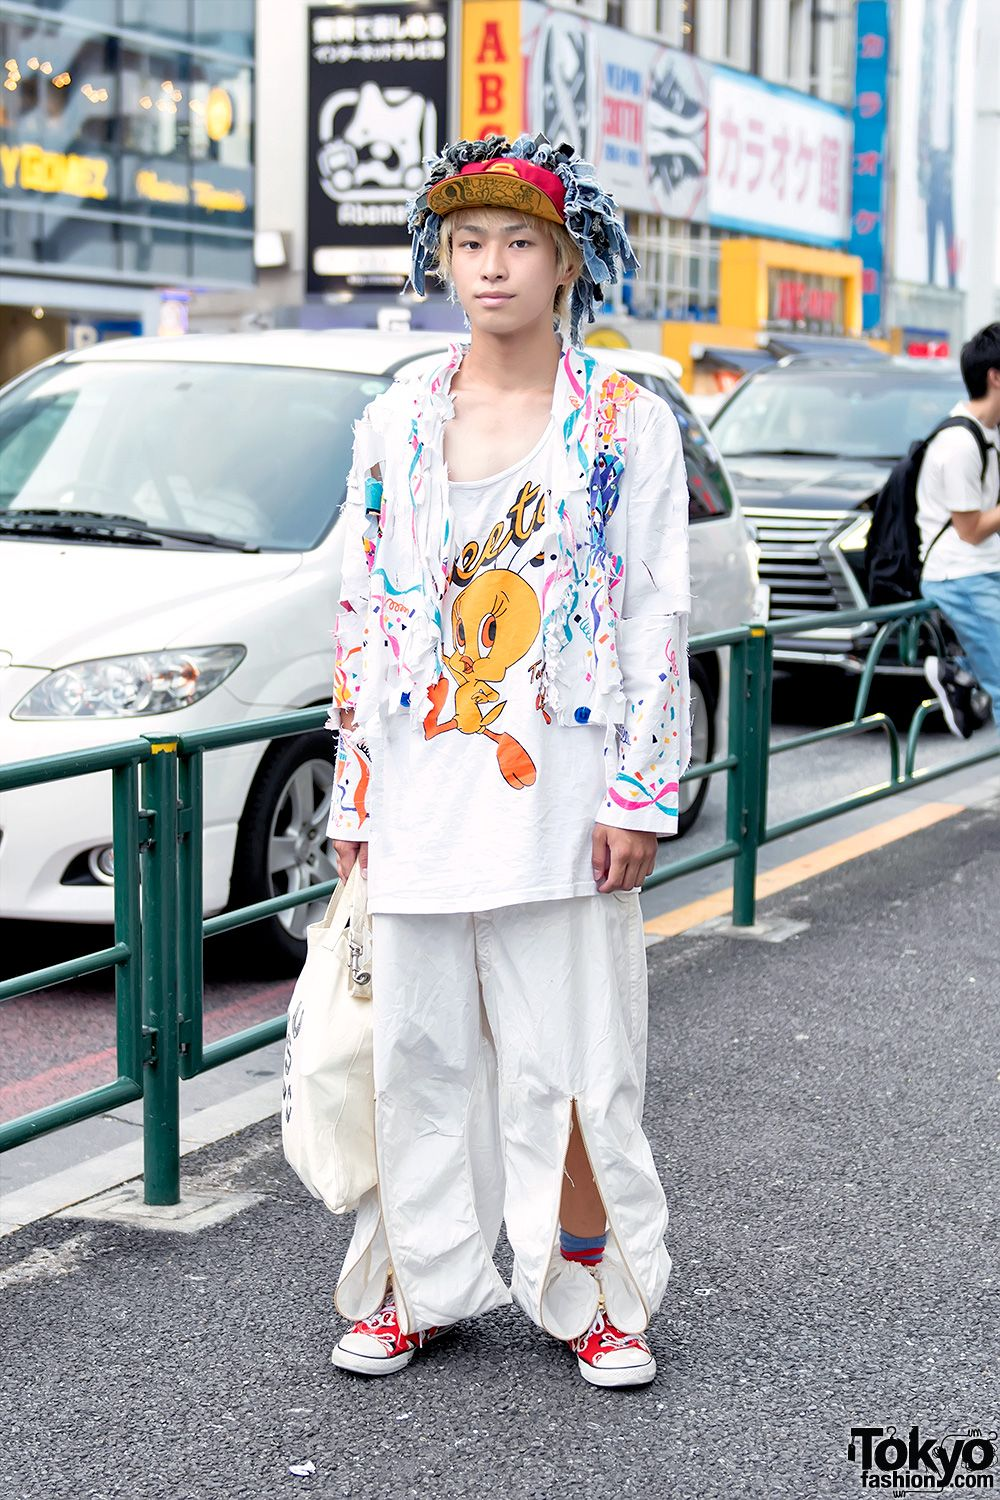 Yuma, 18 years old, student | 3 October 2016 | #Fashion #Harajuku (原宿) #Shibuya (渋谷) #Tokyo (東京) #Japan (日本)